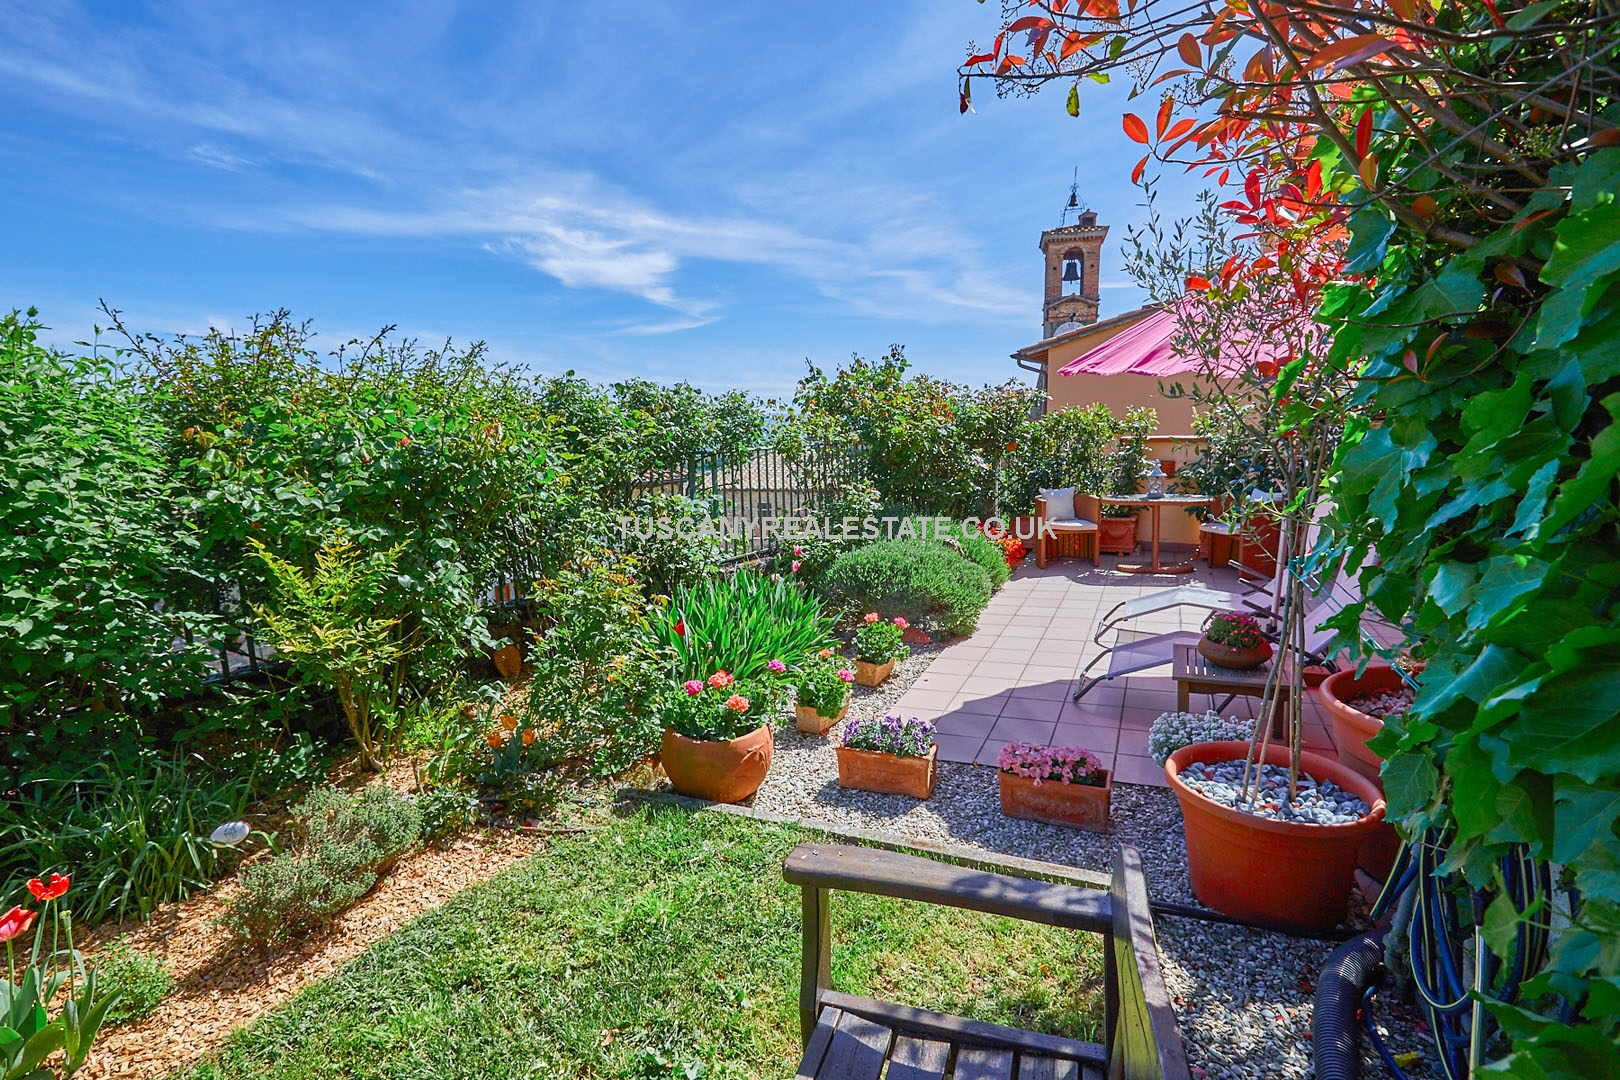 Retiring in Italy or are looking for a holiday home this 2 bedroomed restored stone property in Citerna in Umbria should be on your viewing list.